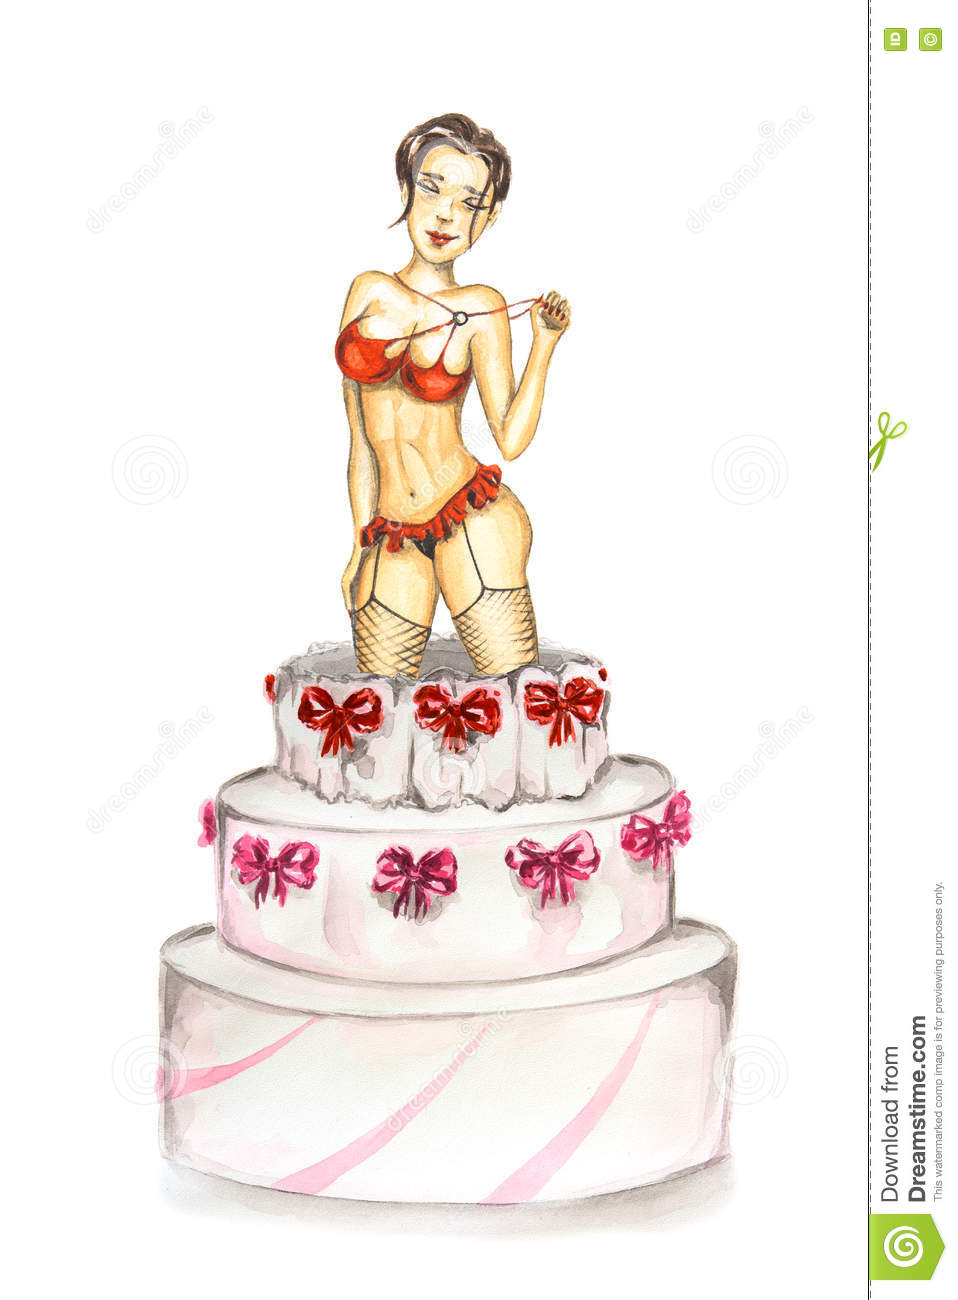 Awesome Stripper Out Of Cake Stock Illustration Illustration Of Birthday Funny Birthday Cards Online Alyptdamsfinfo